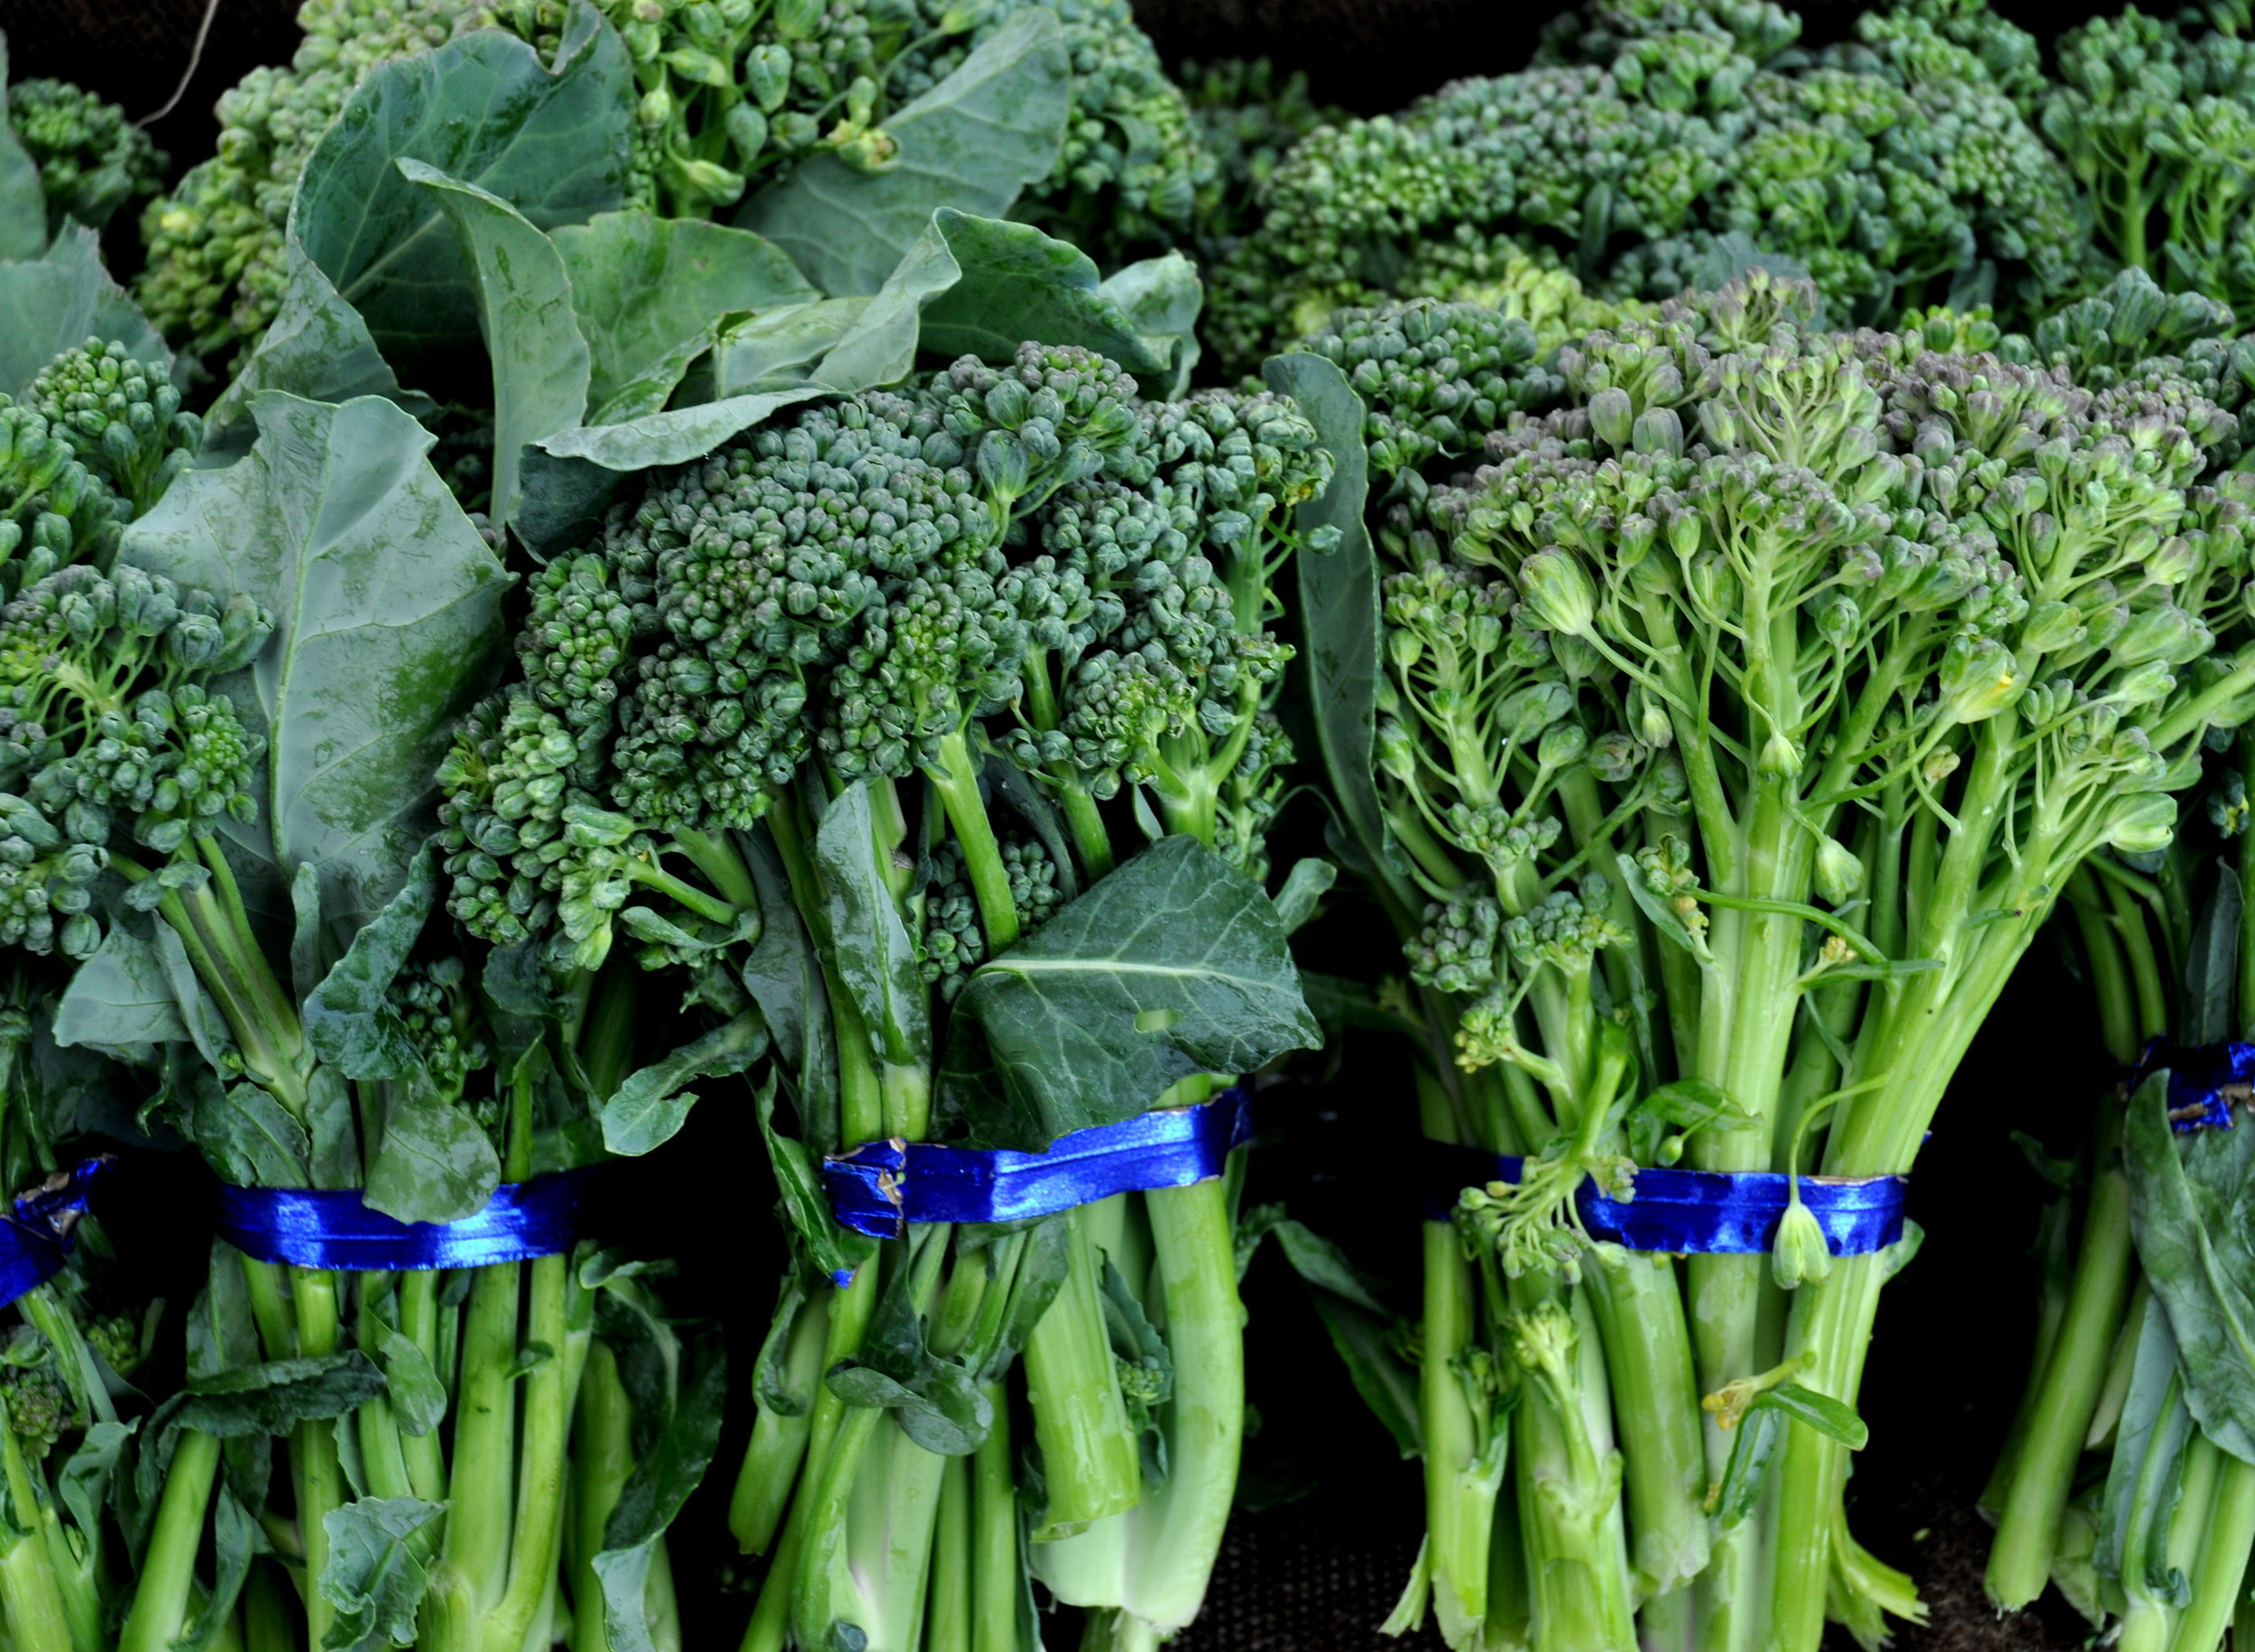 Sprouting broccoli from One Leaf Farm. Photo copyright 2014 by Zachary D. Lyons.